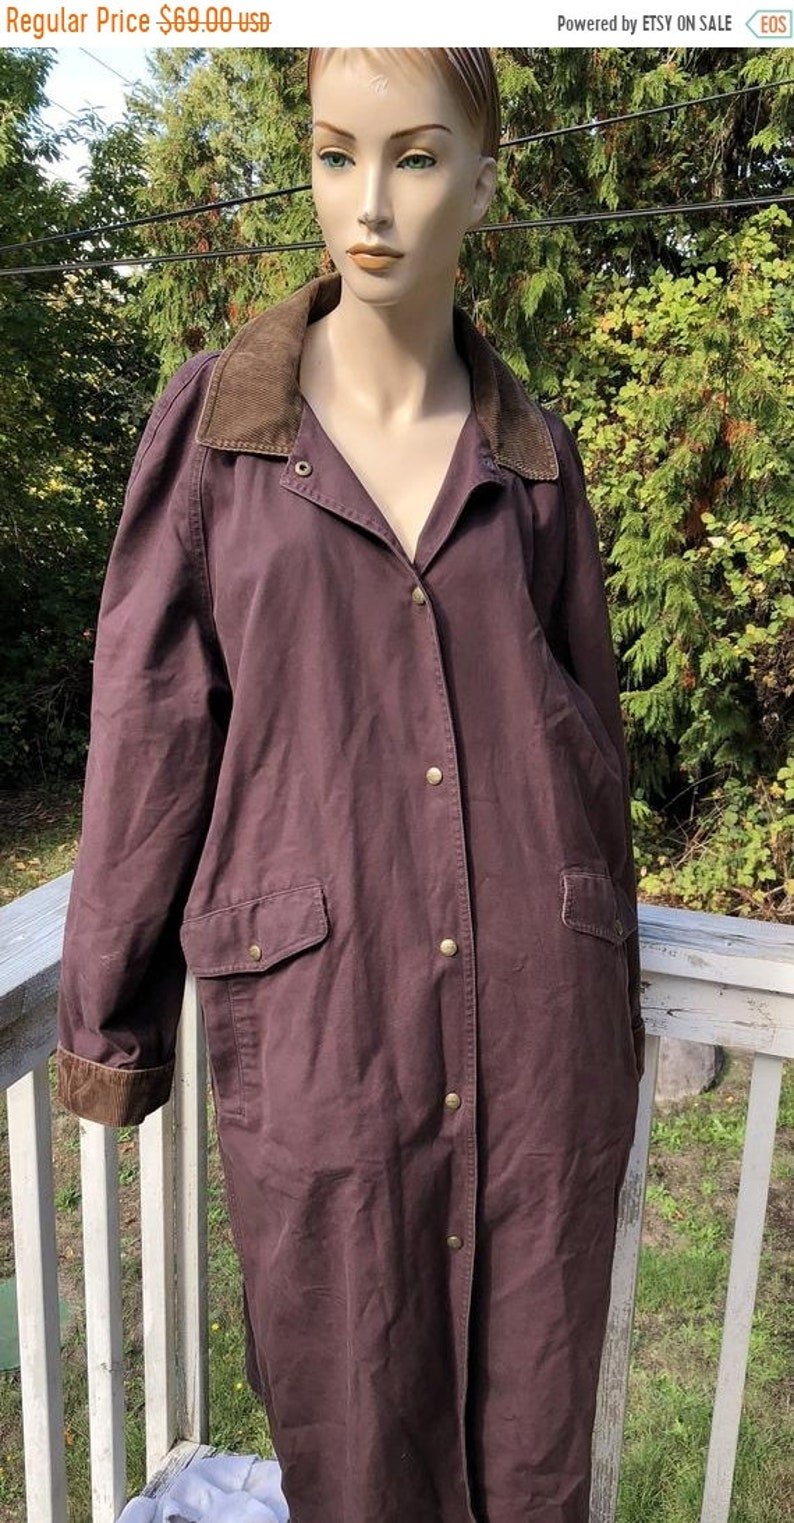 04a85bb9 FLASH SALE LL Bean Andirondak Rustic Brown Corduroy Cotton | Etsy